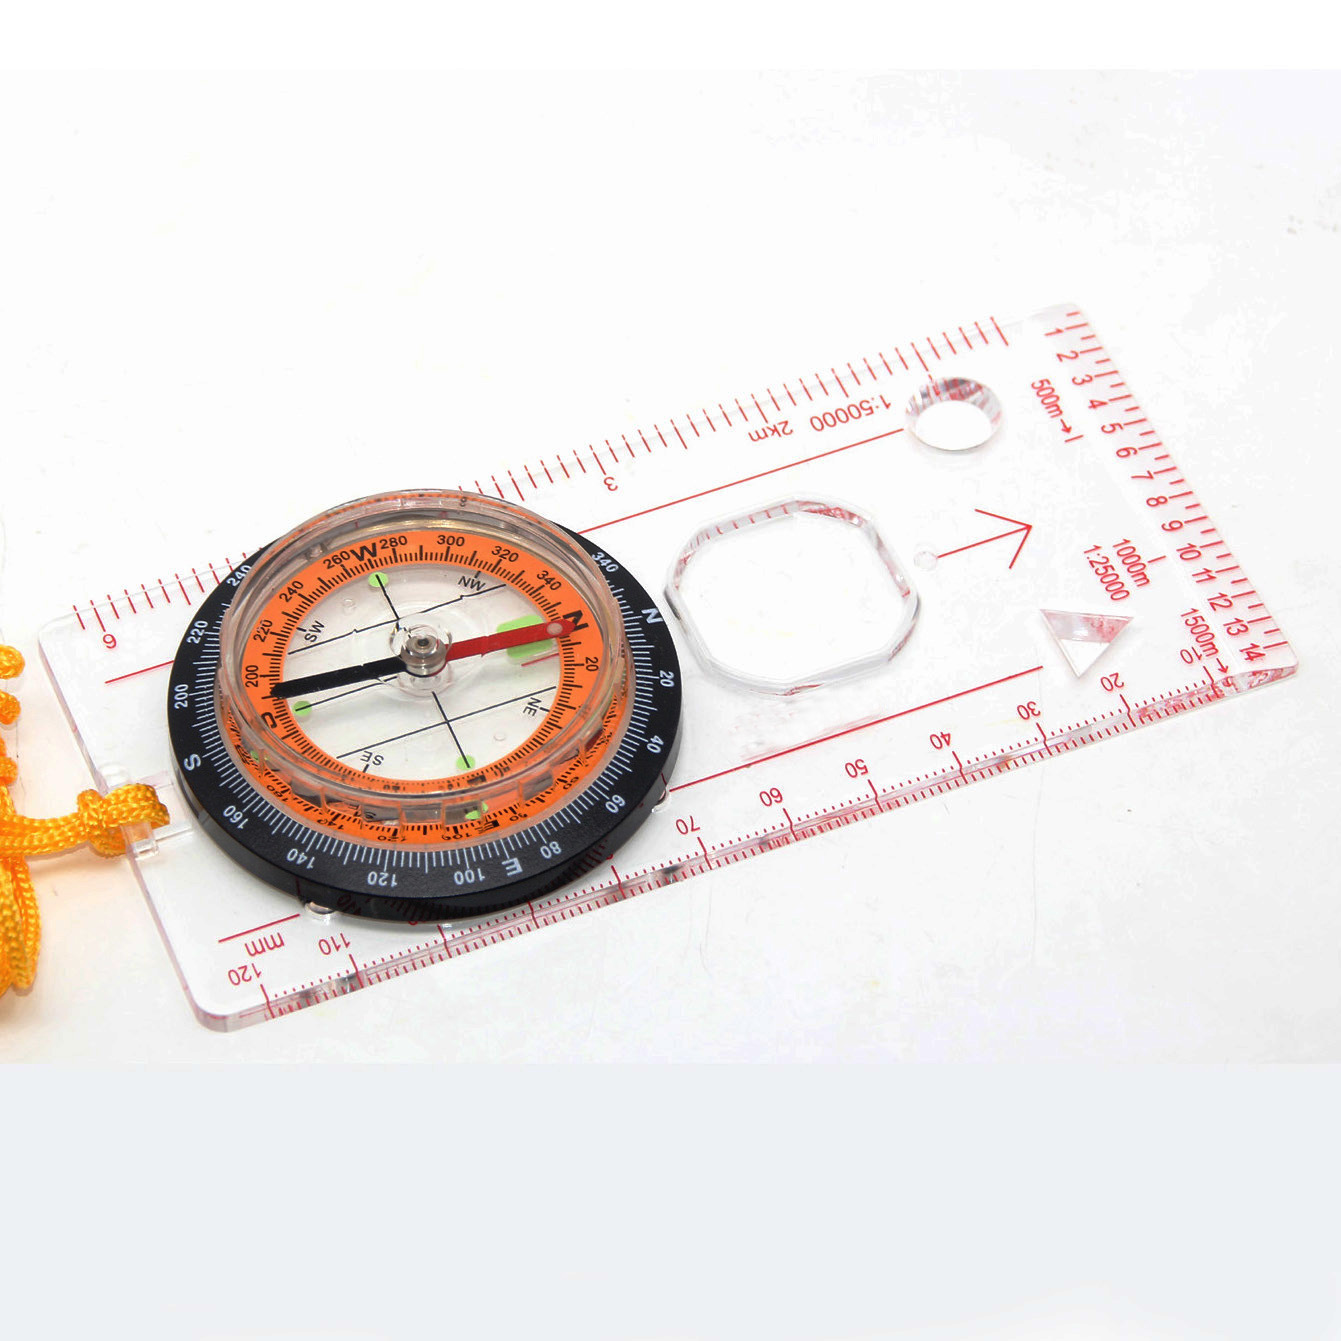 Outdoor Map Compass for Hiking or Sailing #MA-45-5c